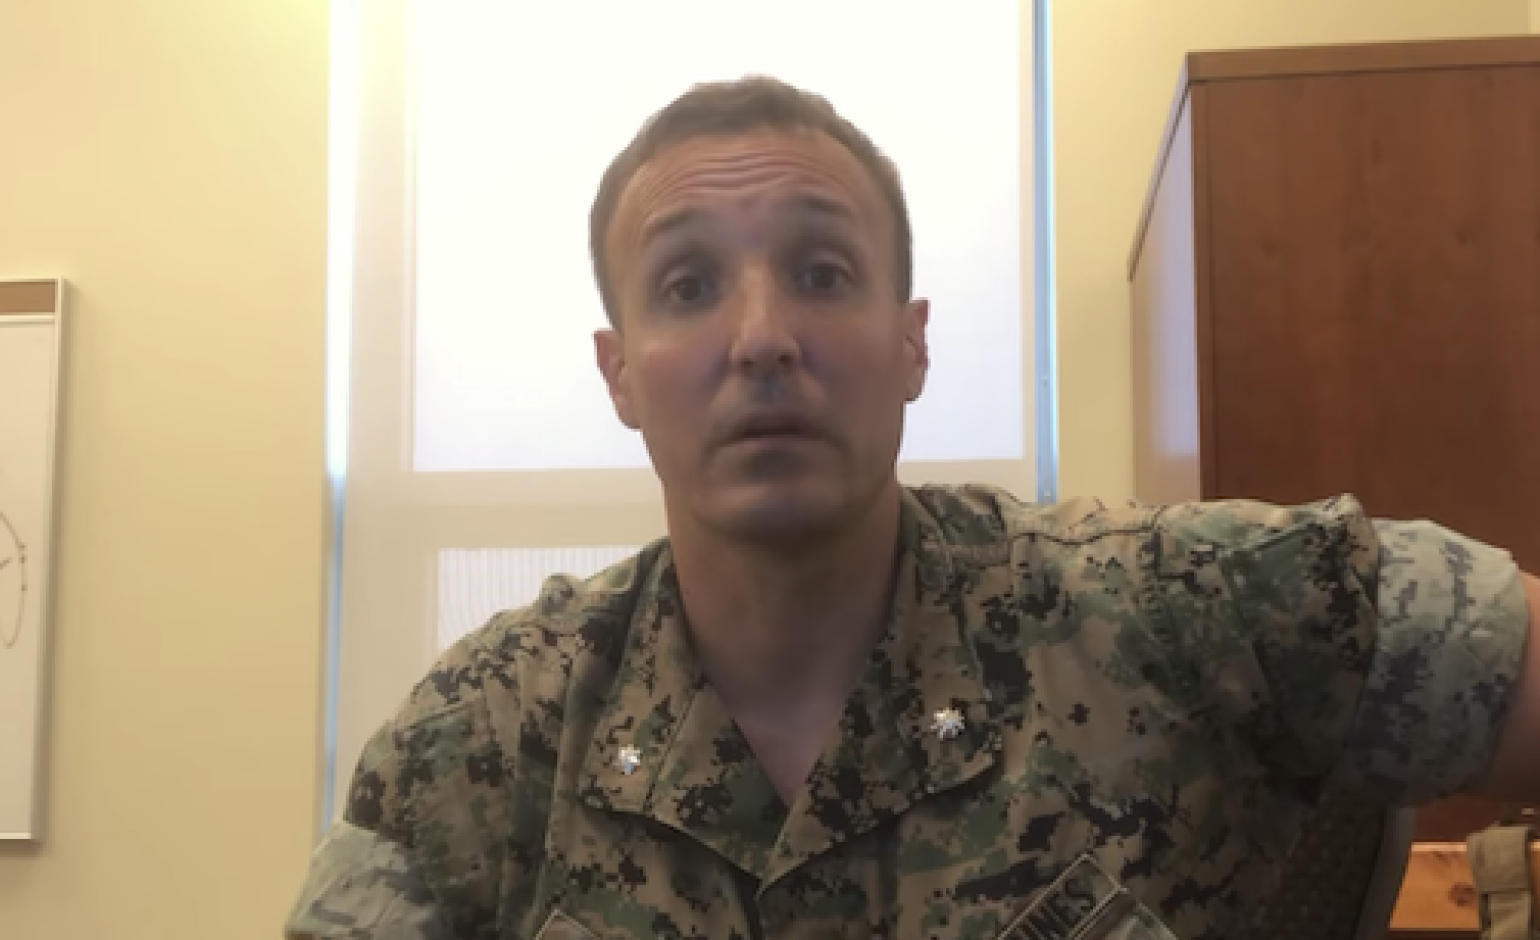 Military judge goes light on 'outstanding' Marine who blasted military brass for botched Afghan pullout